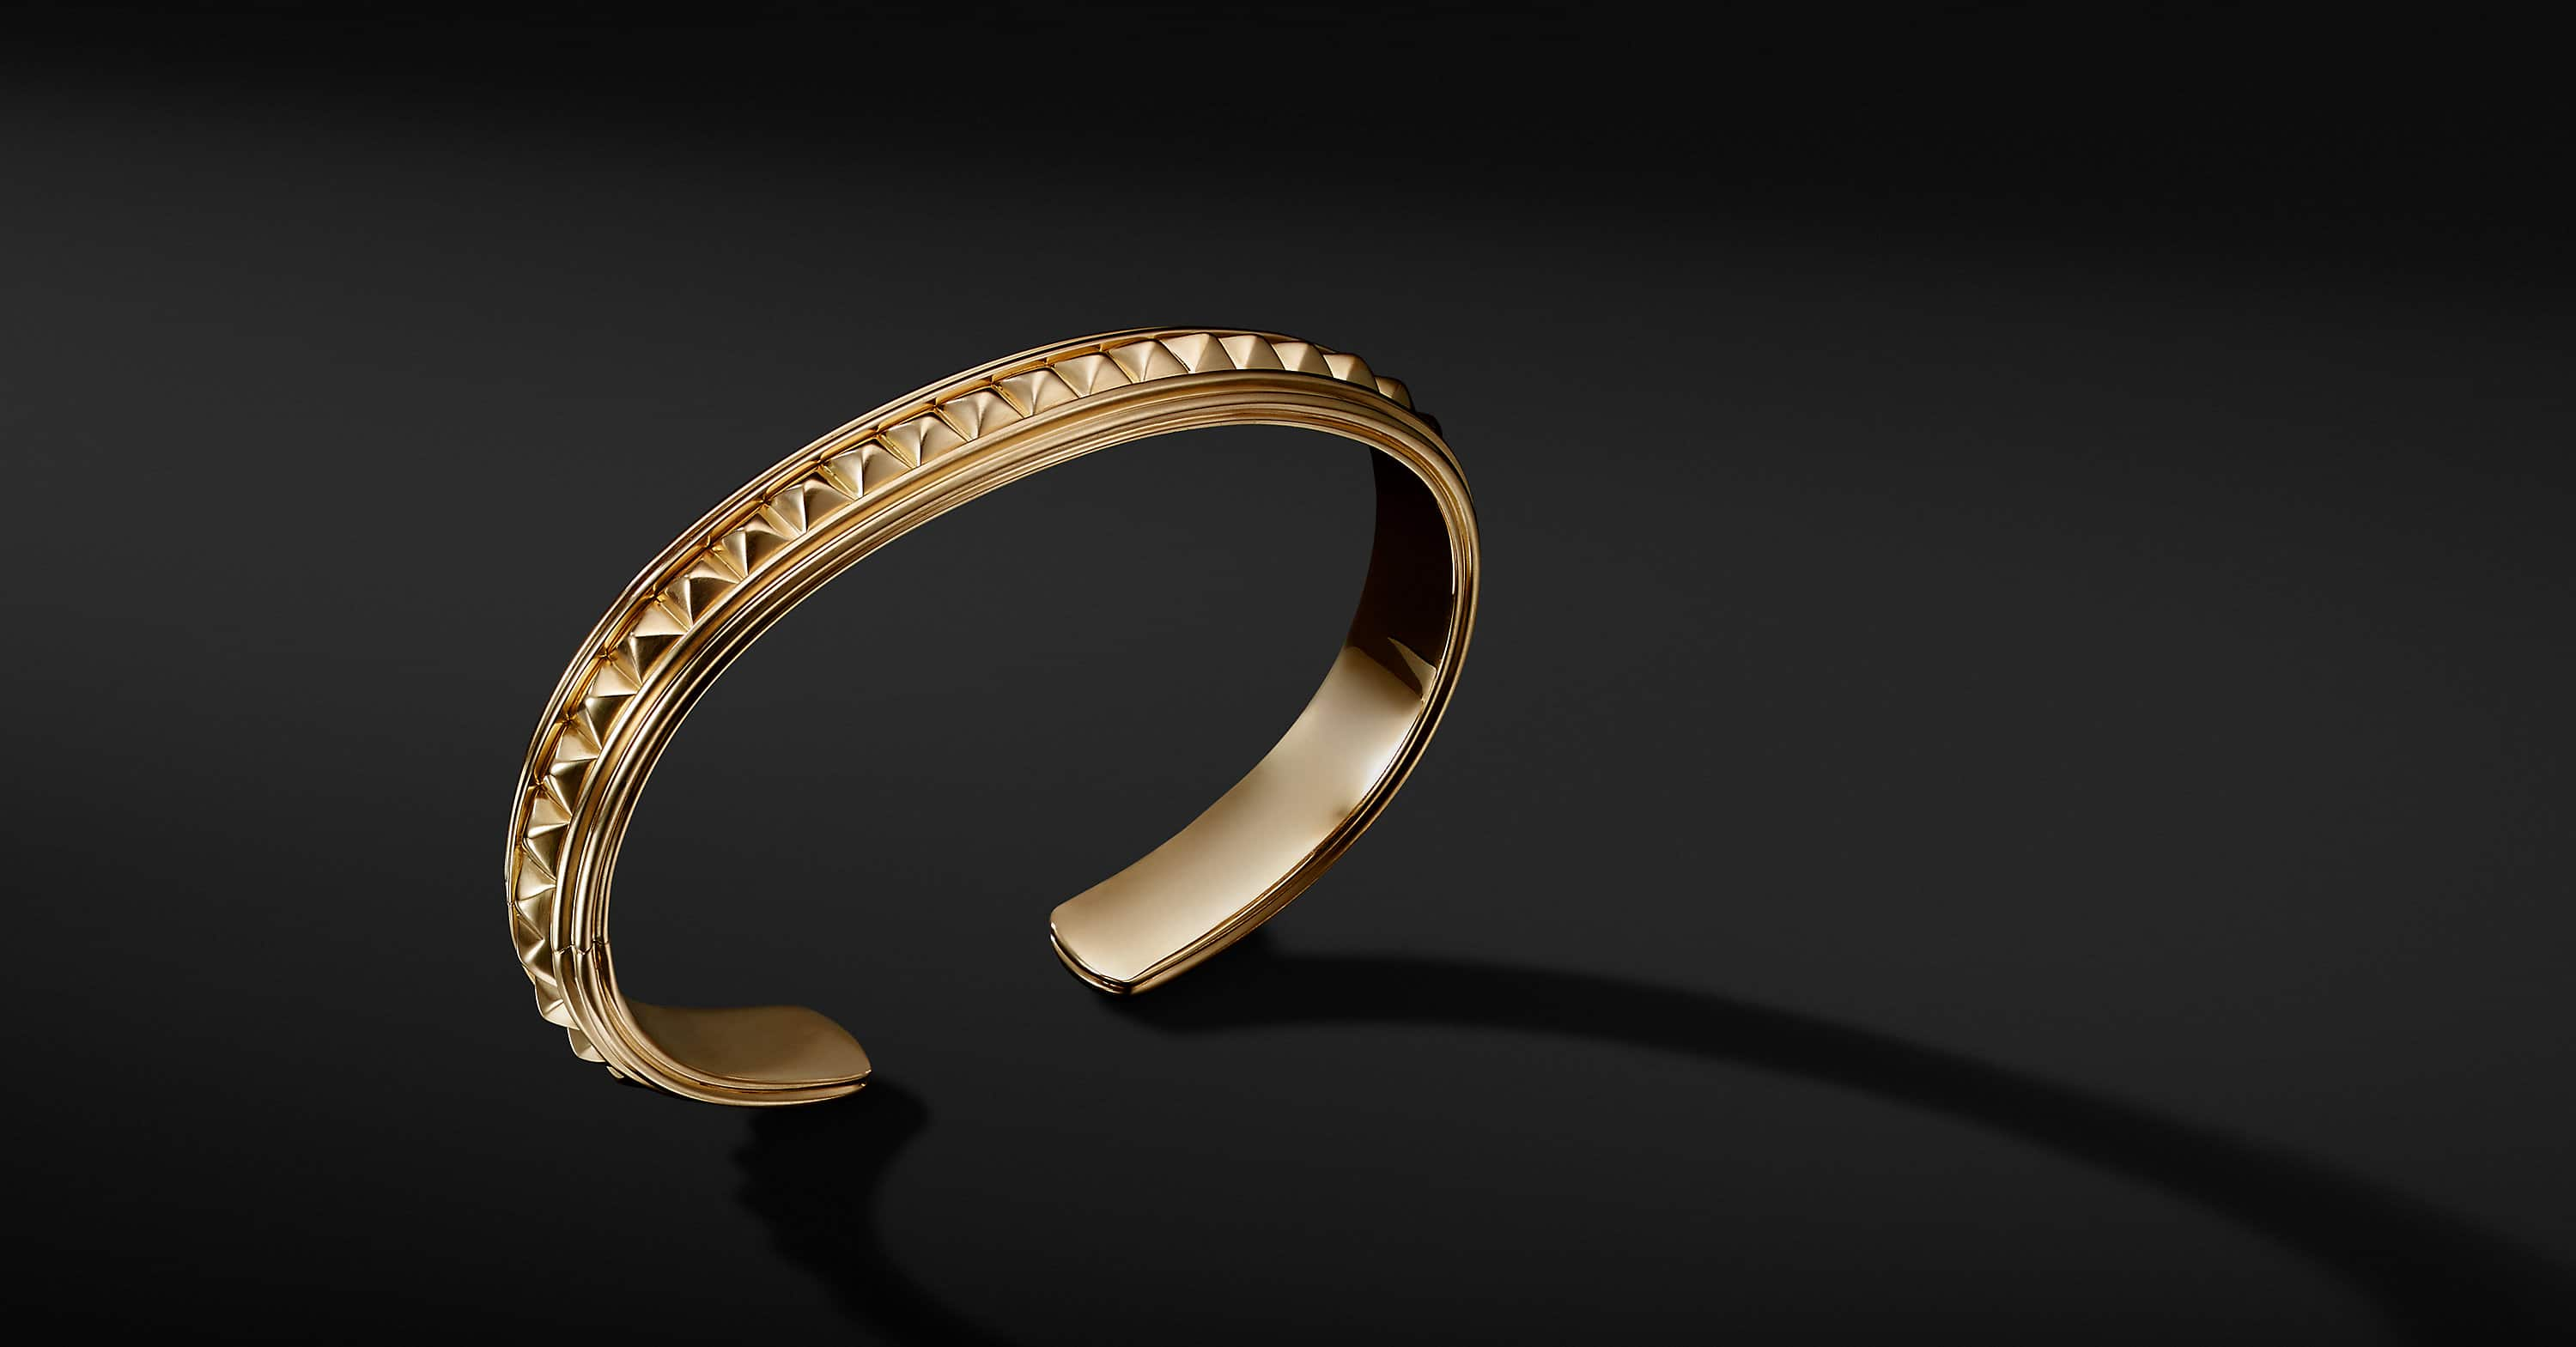 Pyramid Cuff Bracelet in 18K Yellow Gold, 9.5mm